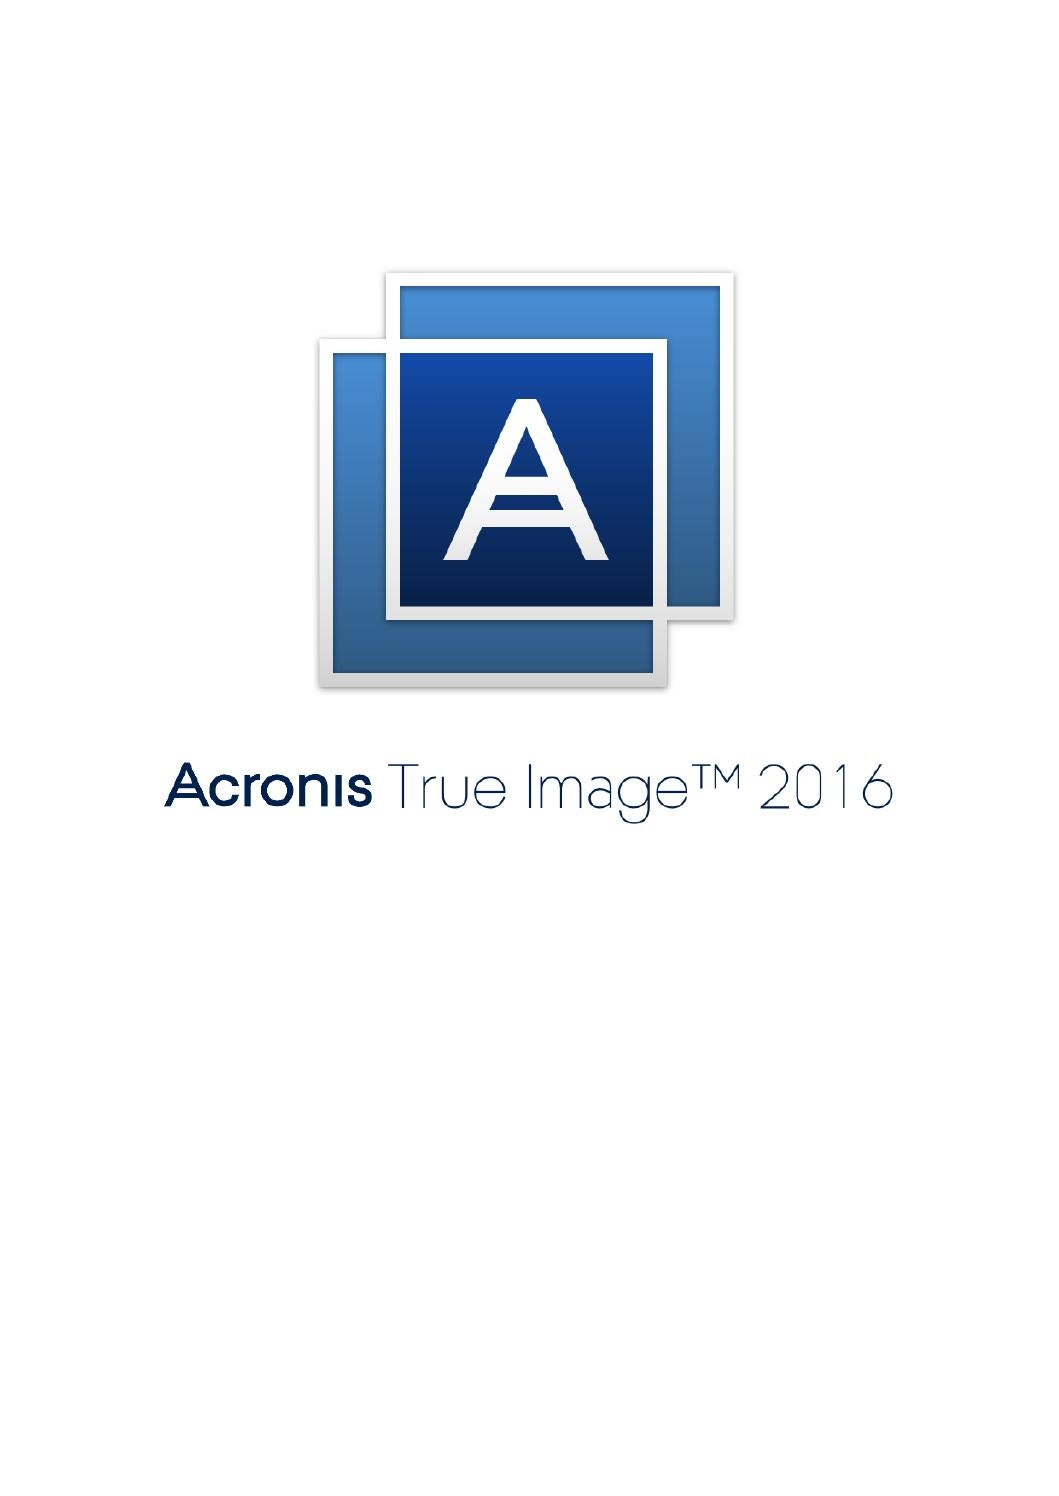 Acronis True Image 11 Manual